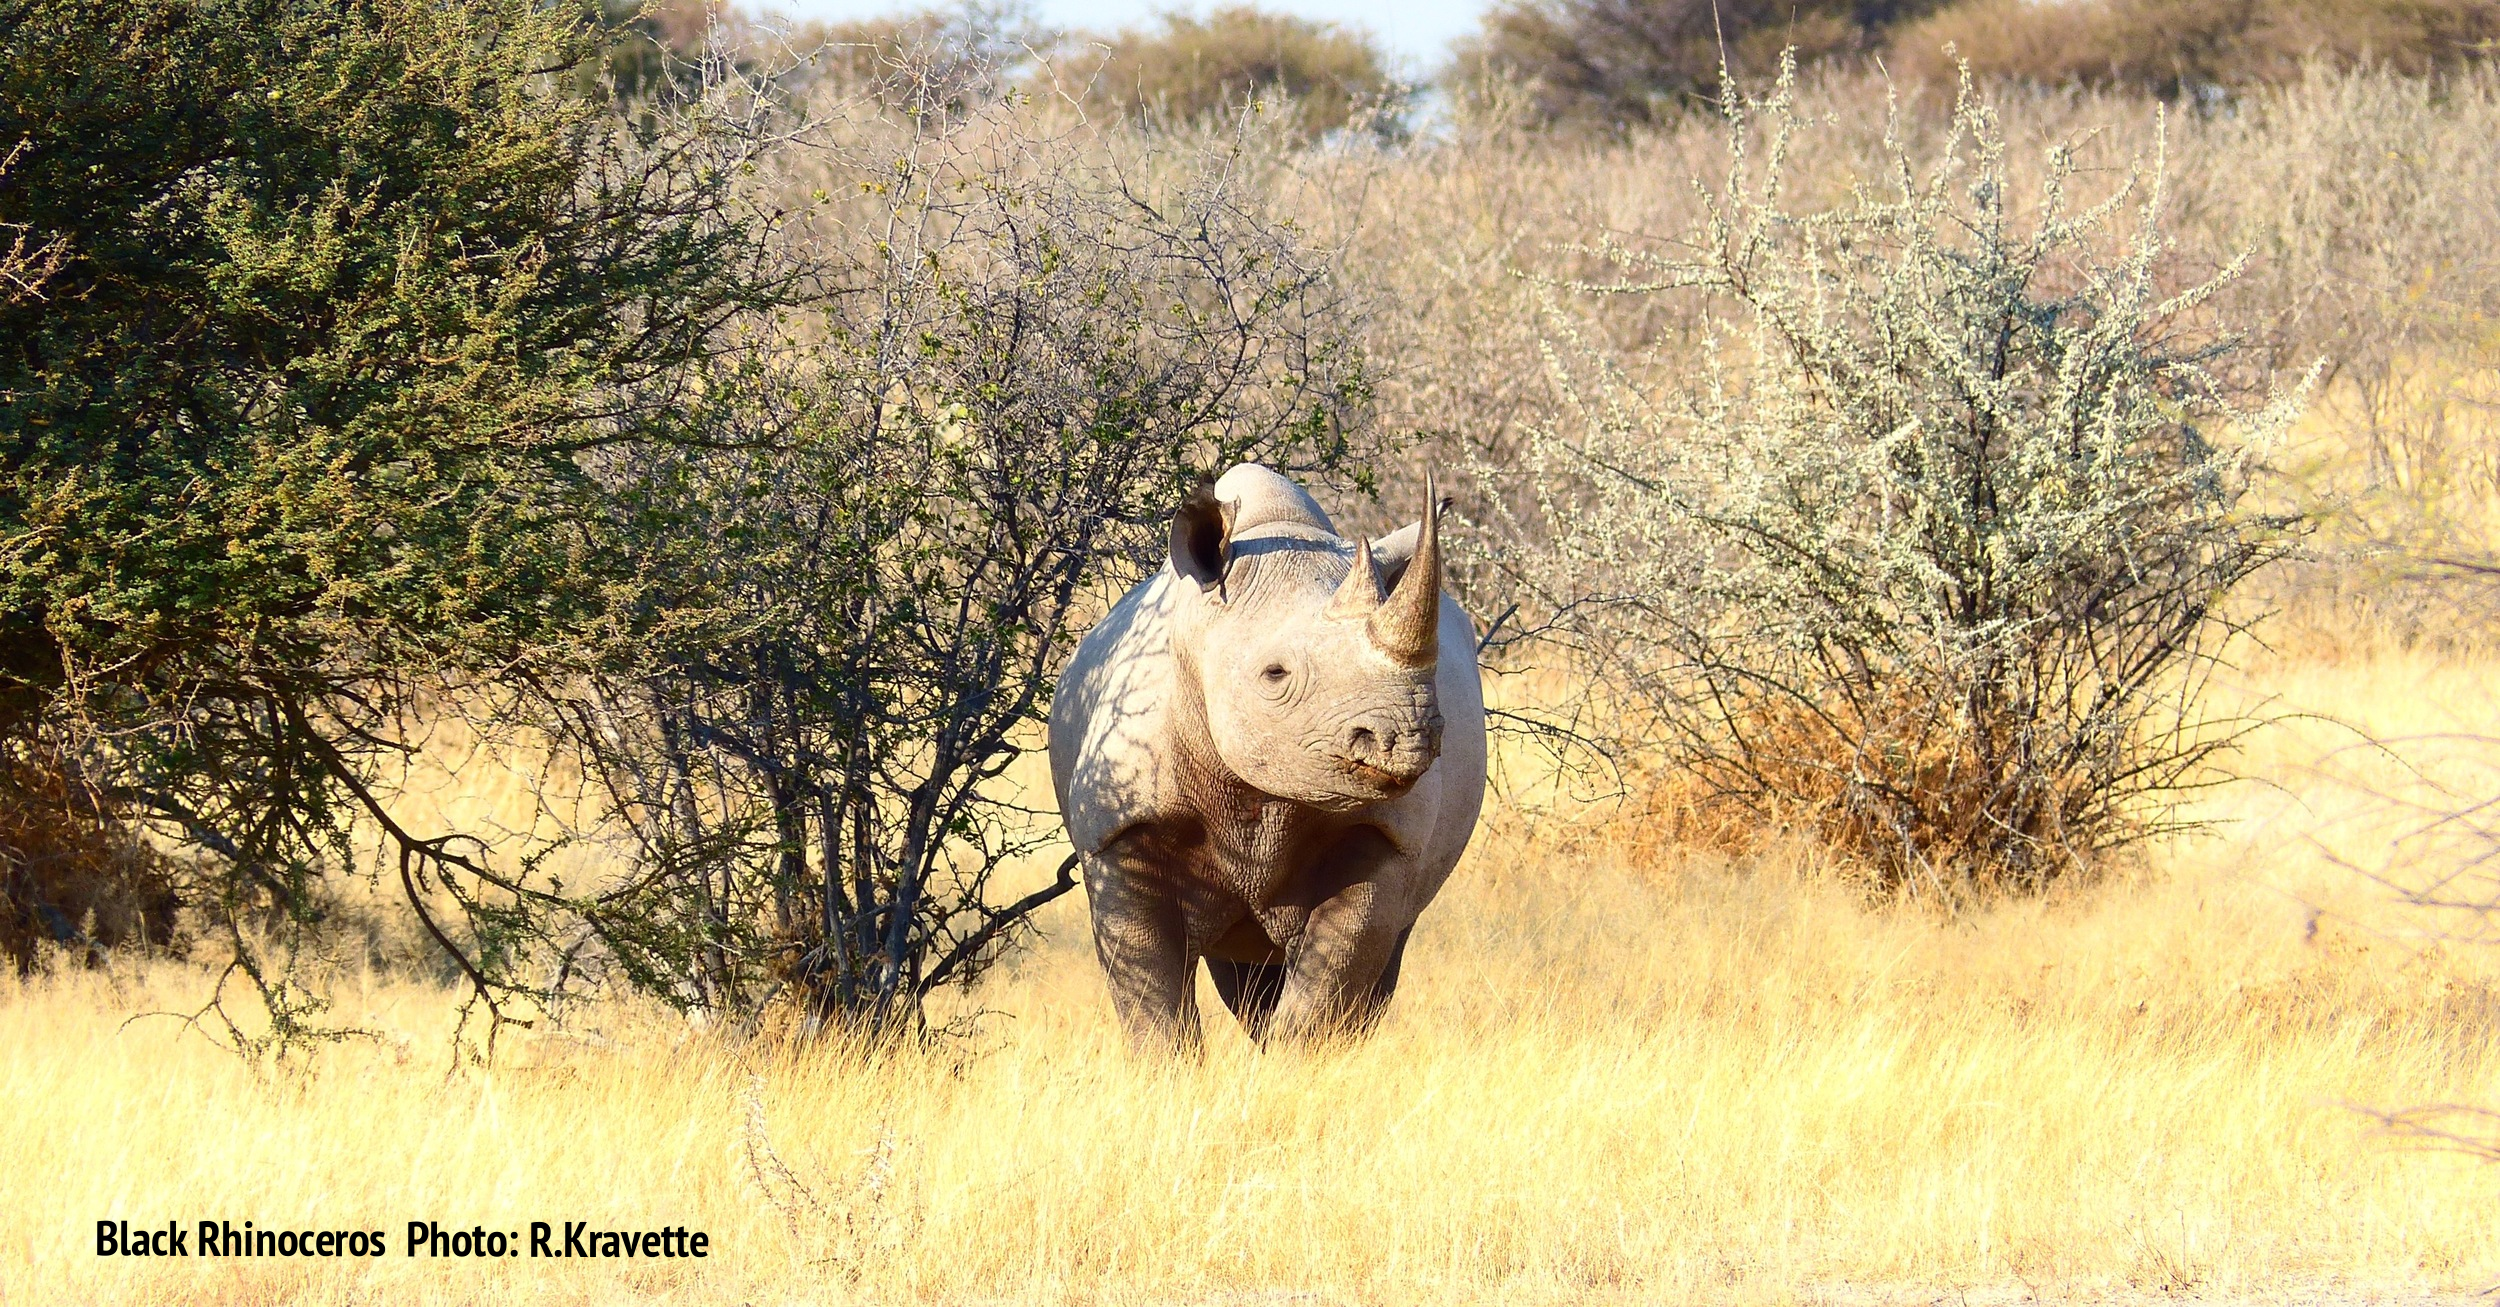 A black rhino watches us as we watch him. Etosha National Park, Namibia Image: © R. Kravette for Destination: Wildlife